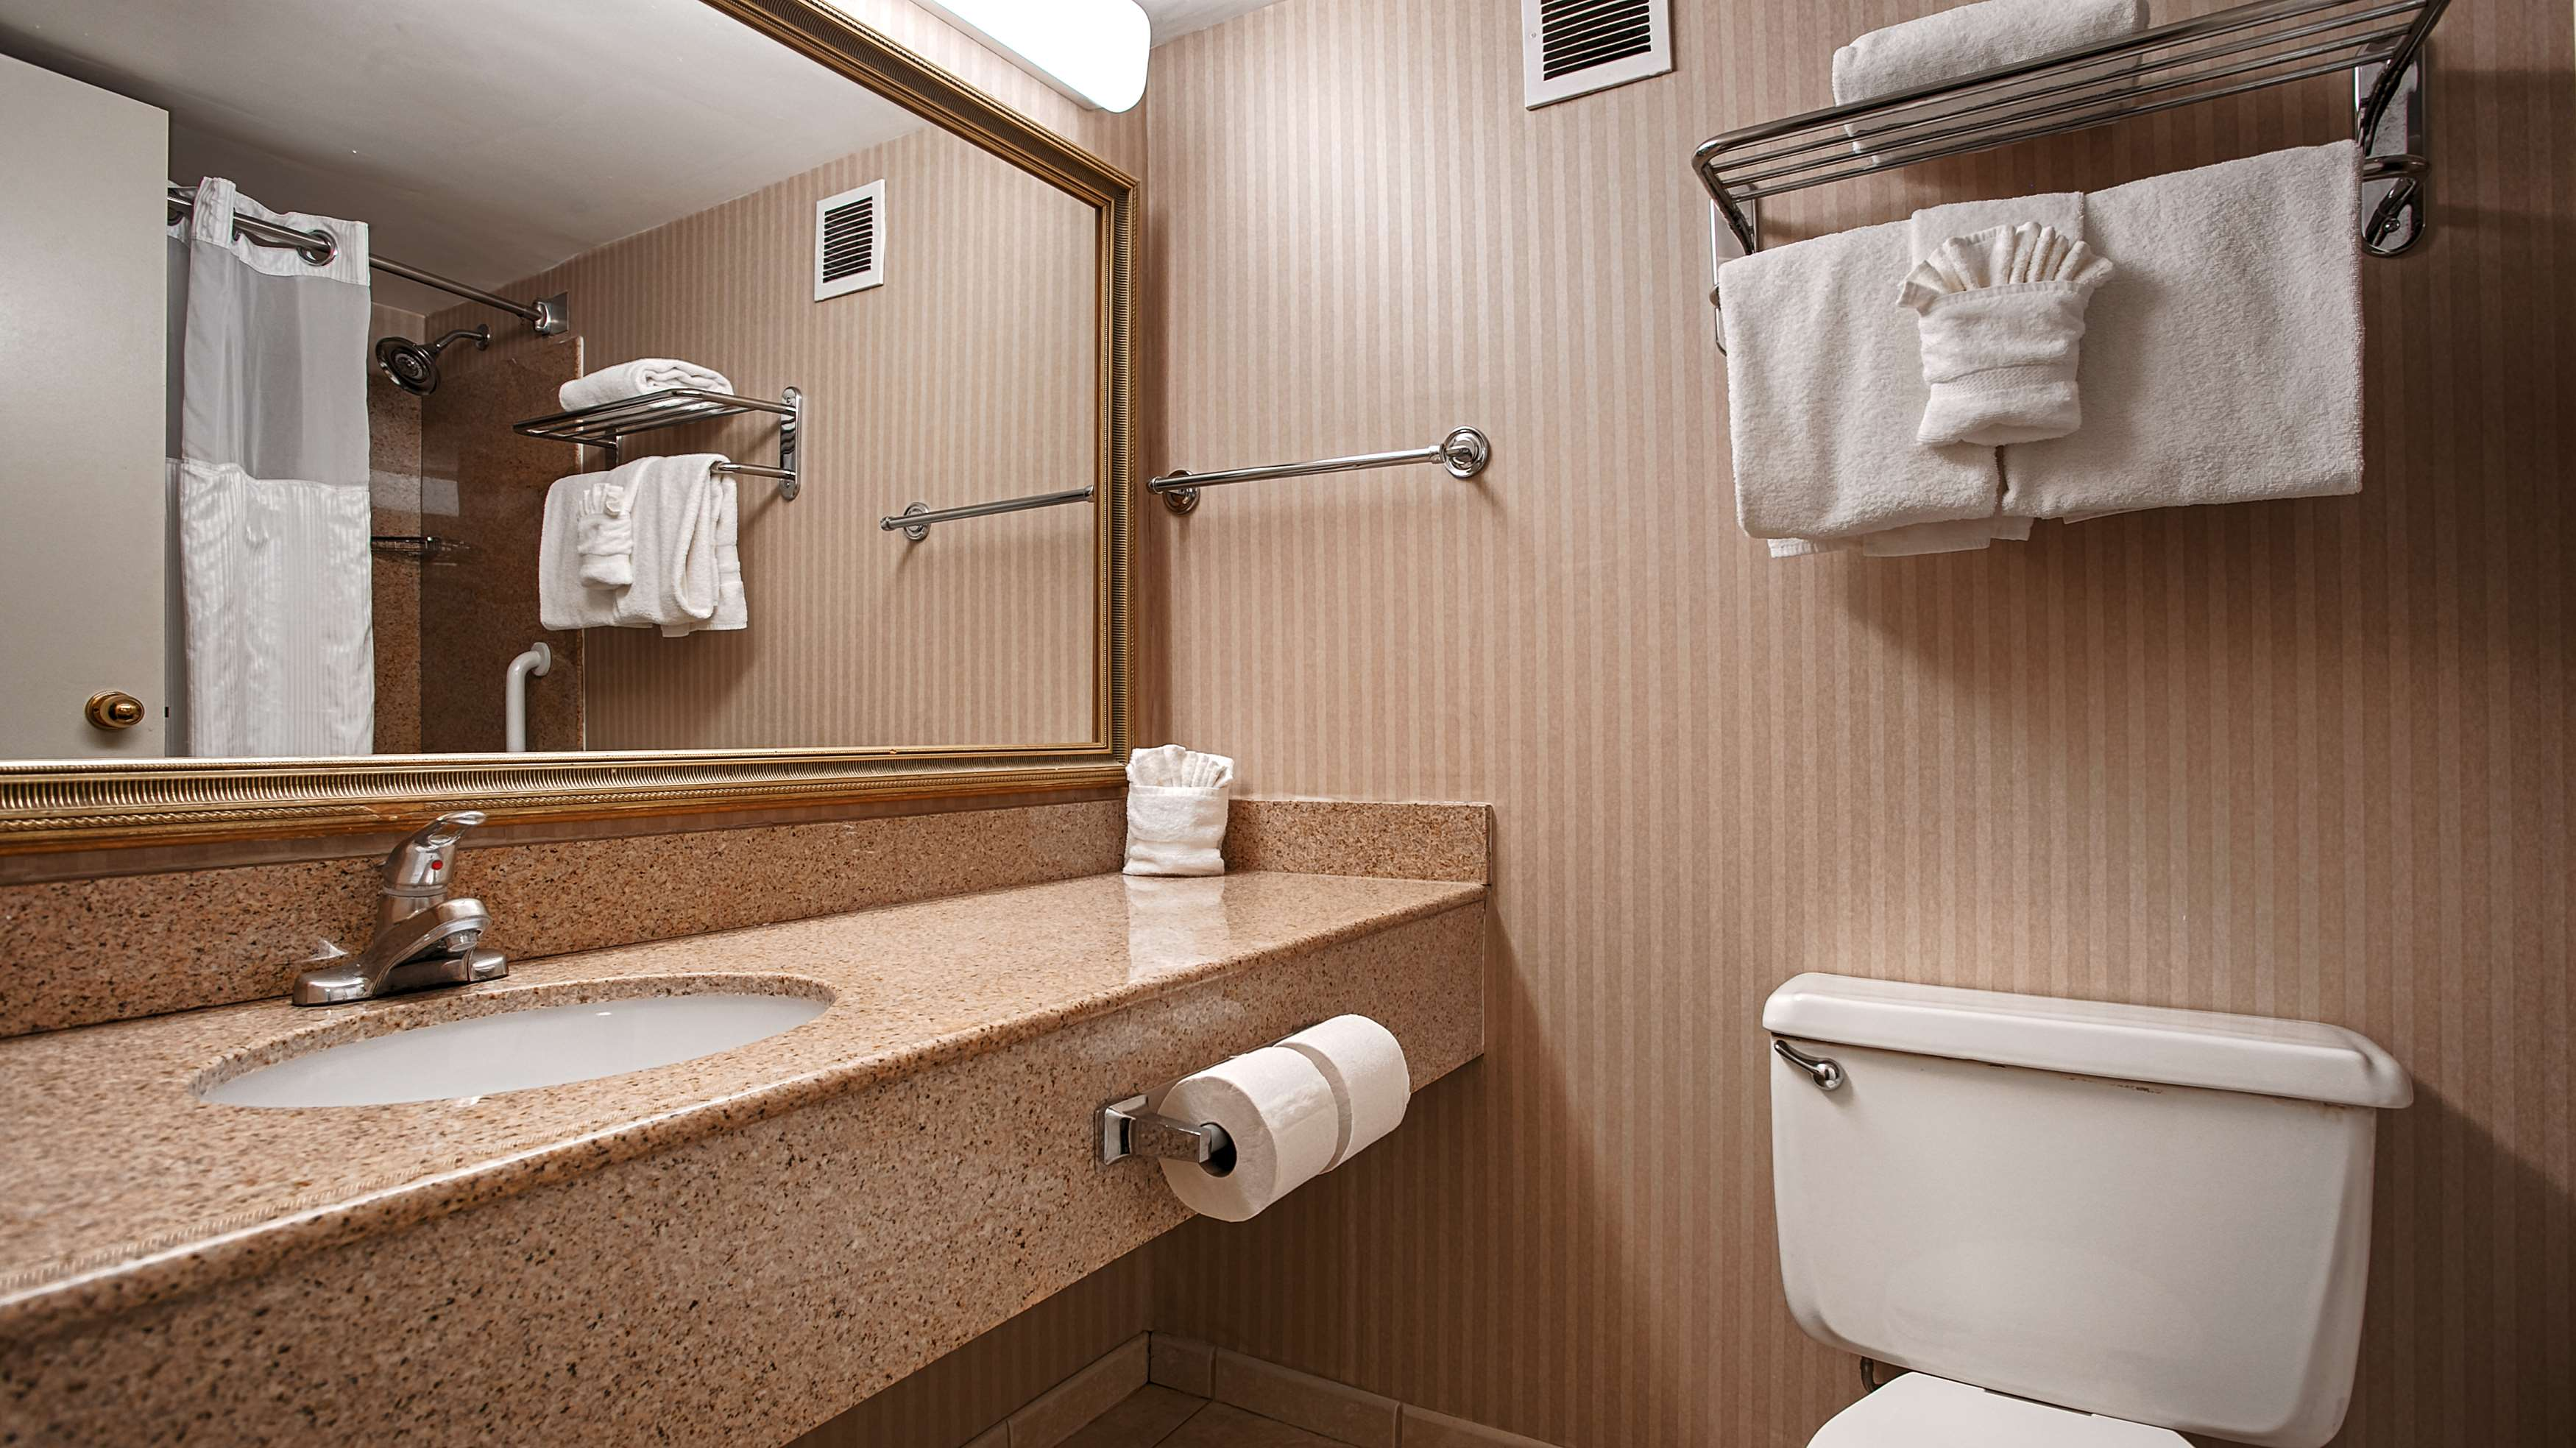 Best Western Plus Rockville Hotel & Suites image 19